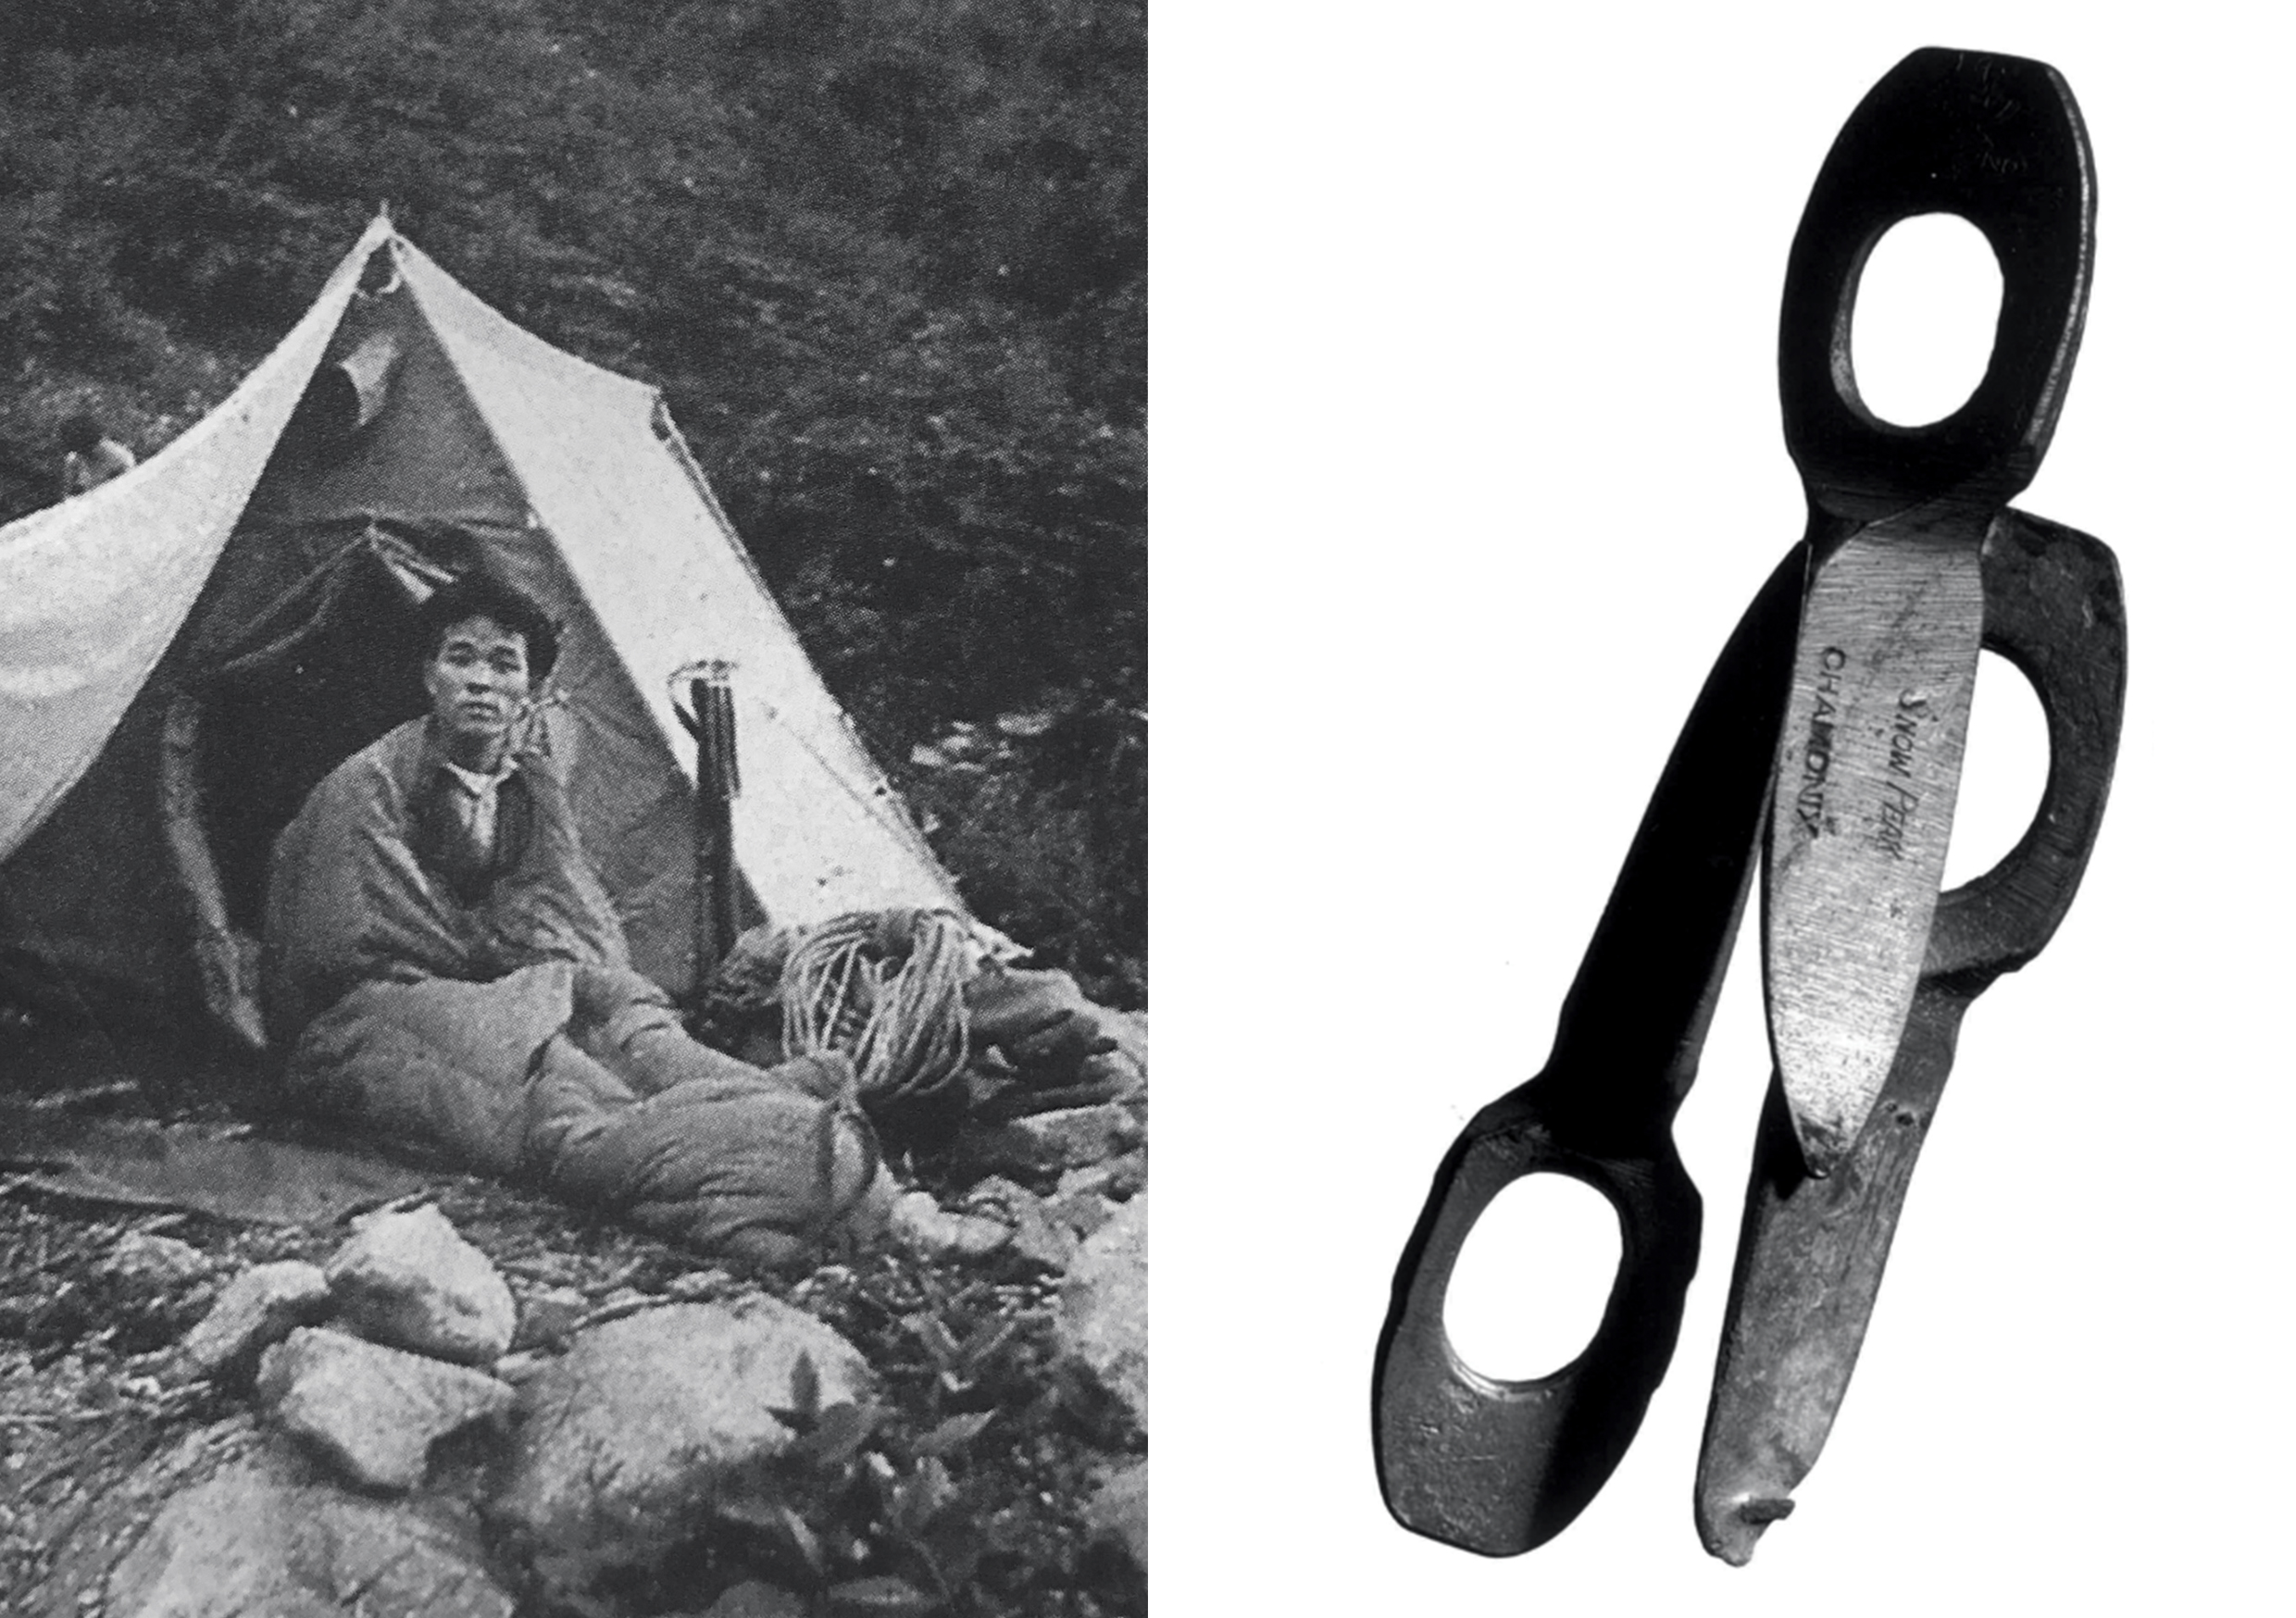 snow-peak-founder-and-climbing-tool